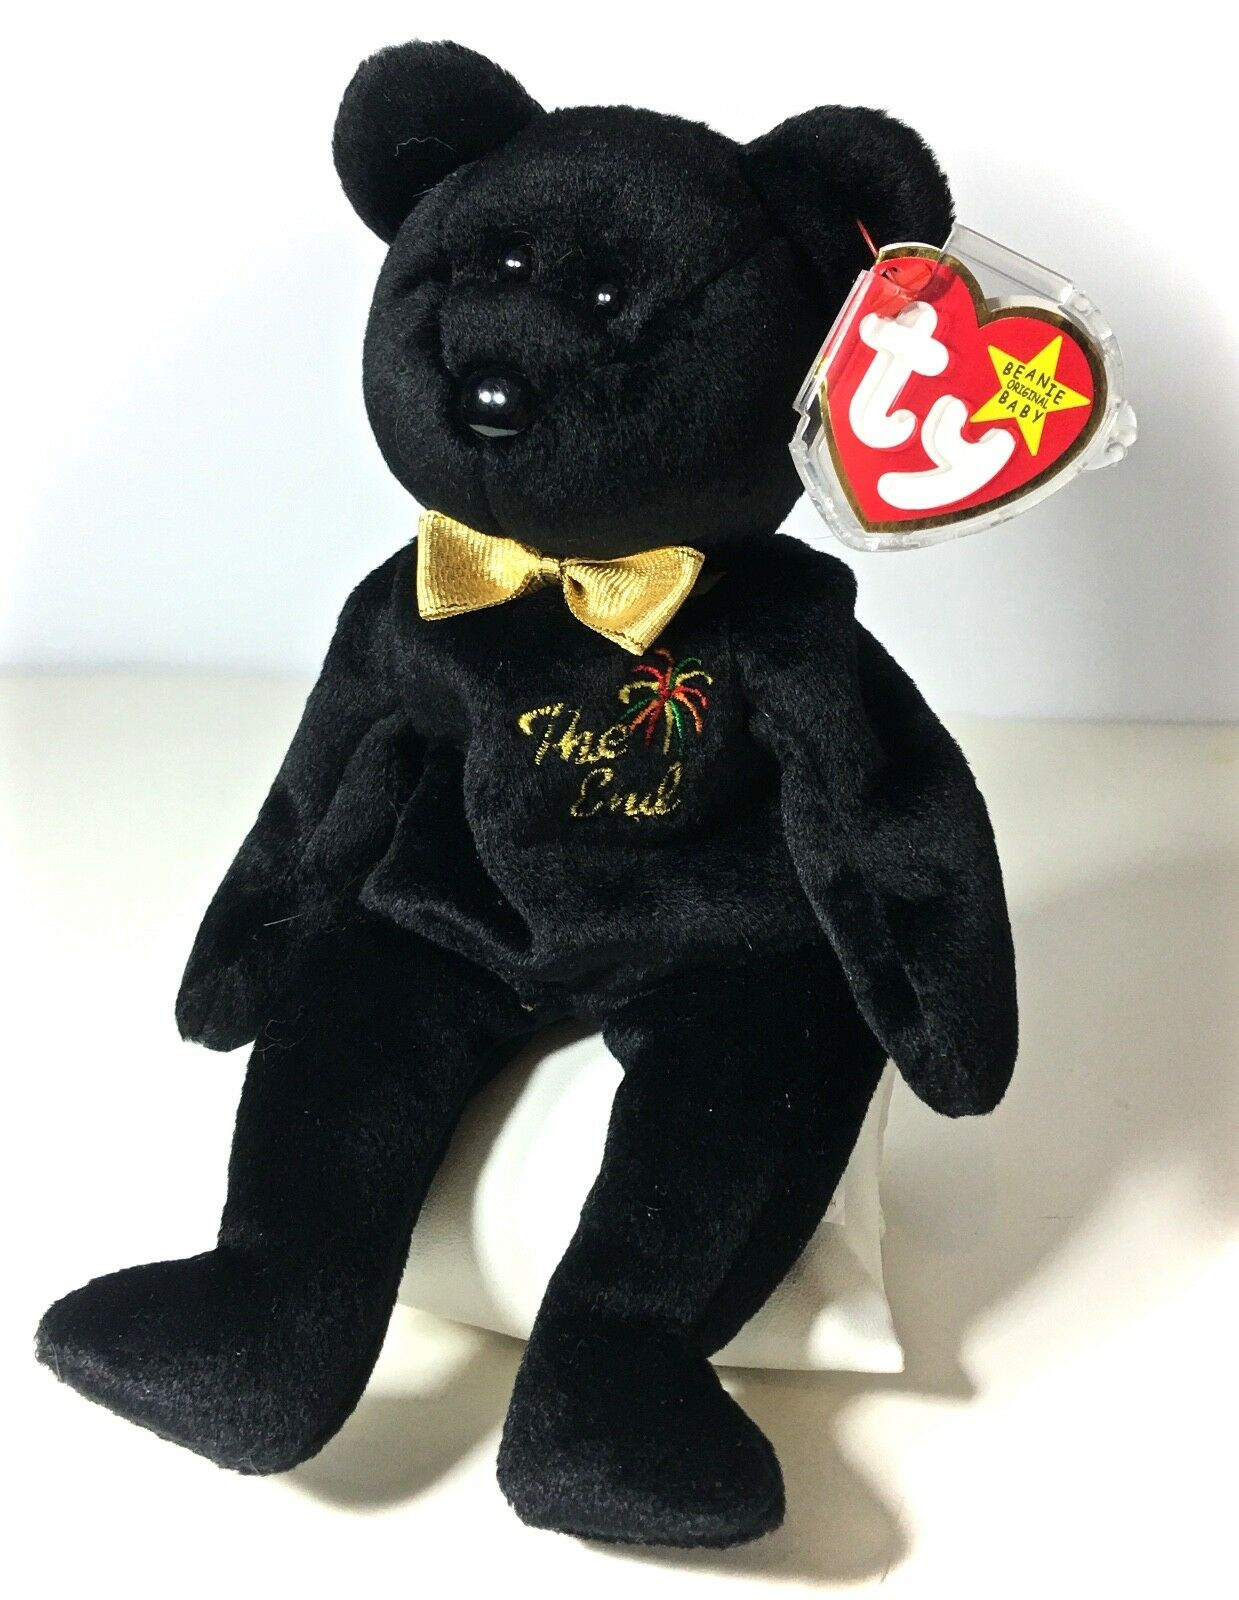 TY TY TY Beanie Baby  GiGi  Poodle Mint Condition With Errors  Rare Collectable 1999 c6763a